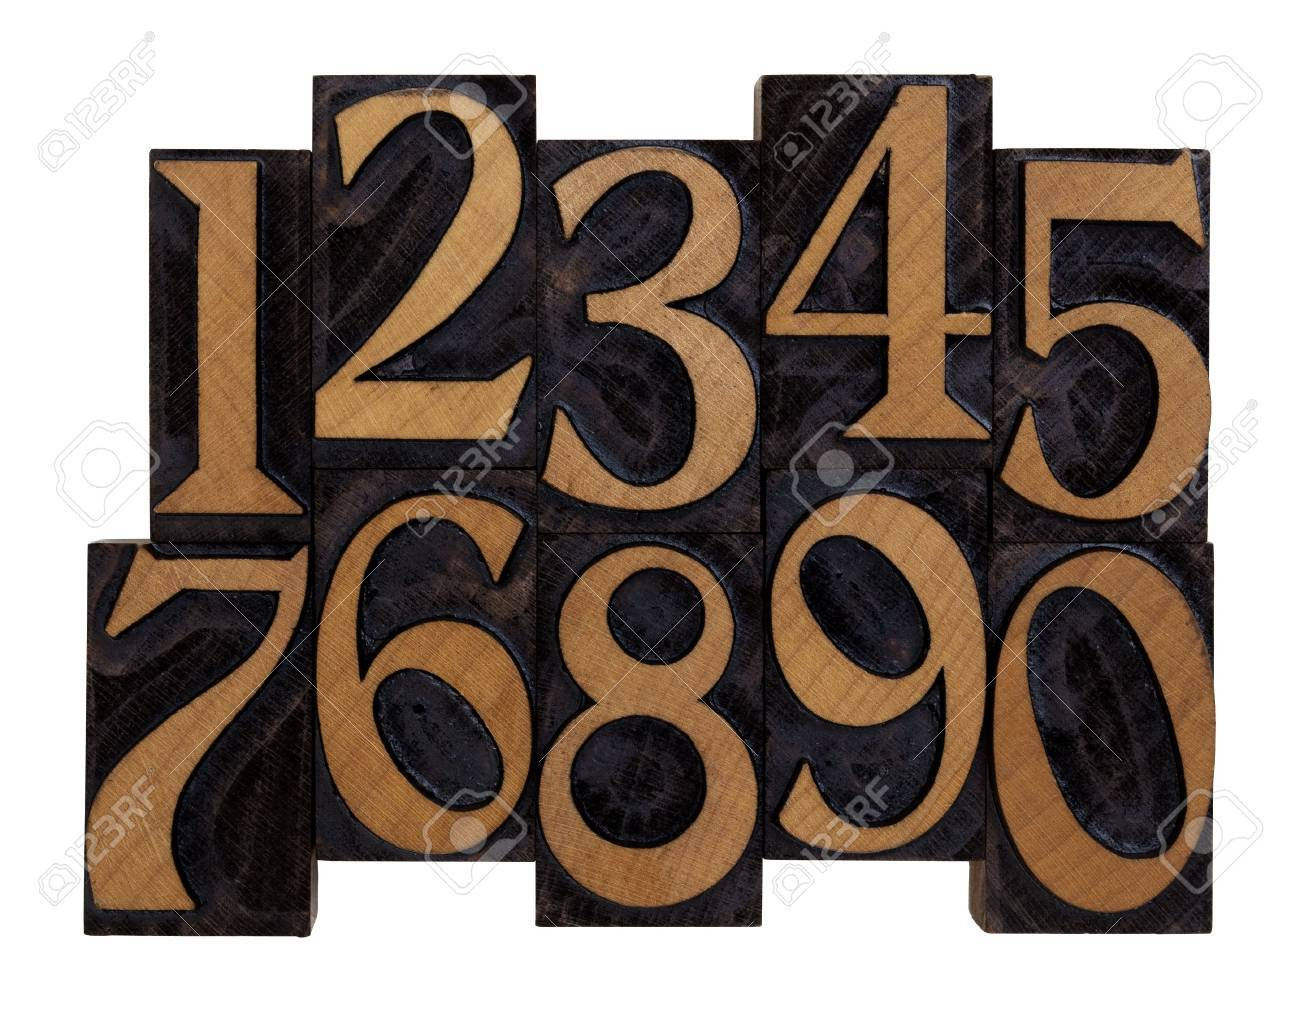 ten arabic numerals 0-9 in vintage wood letterpress blocks stained by black ink, flipped horizontally, isolated on white Stock Photo - 6790269